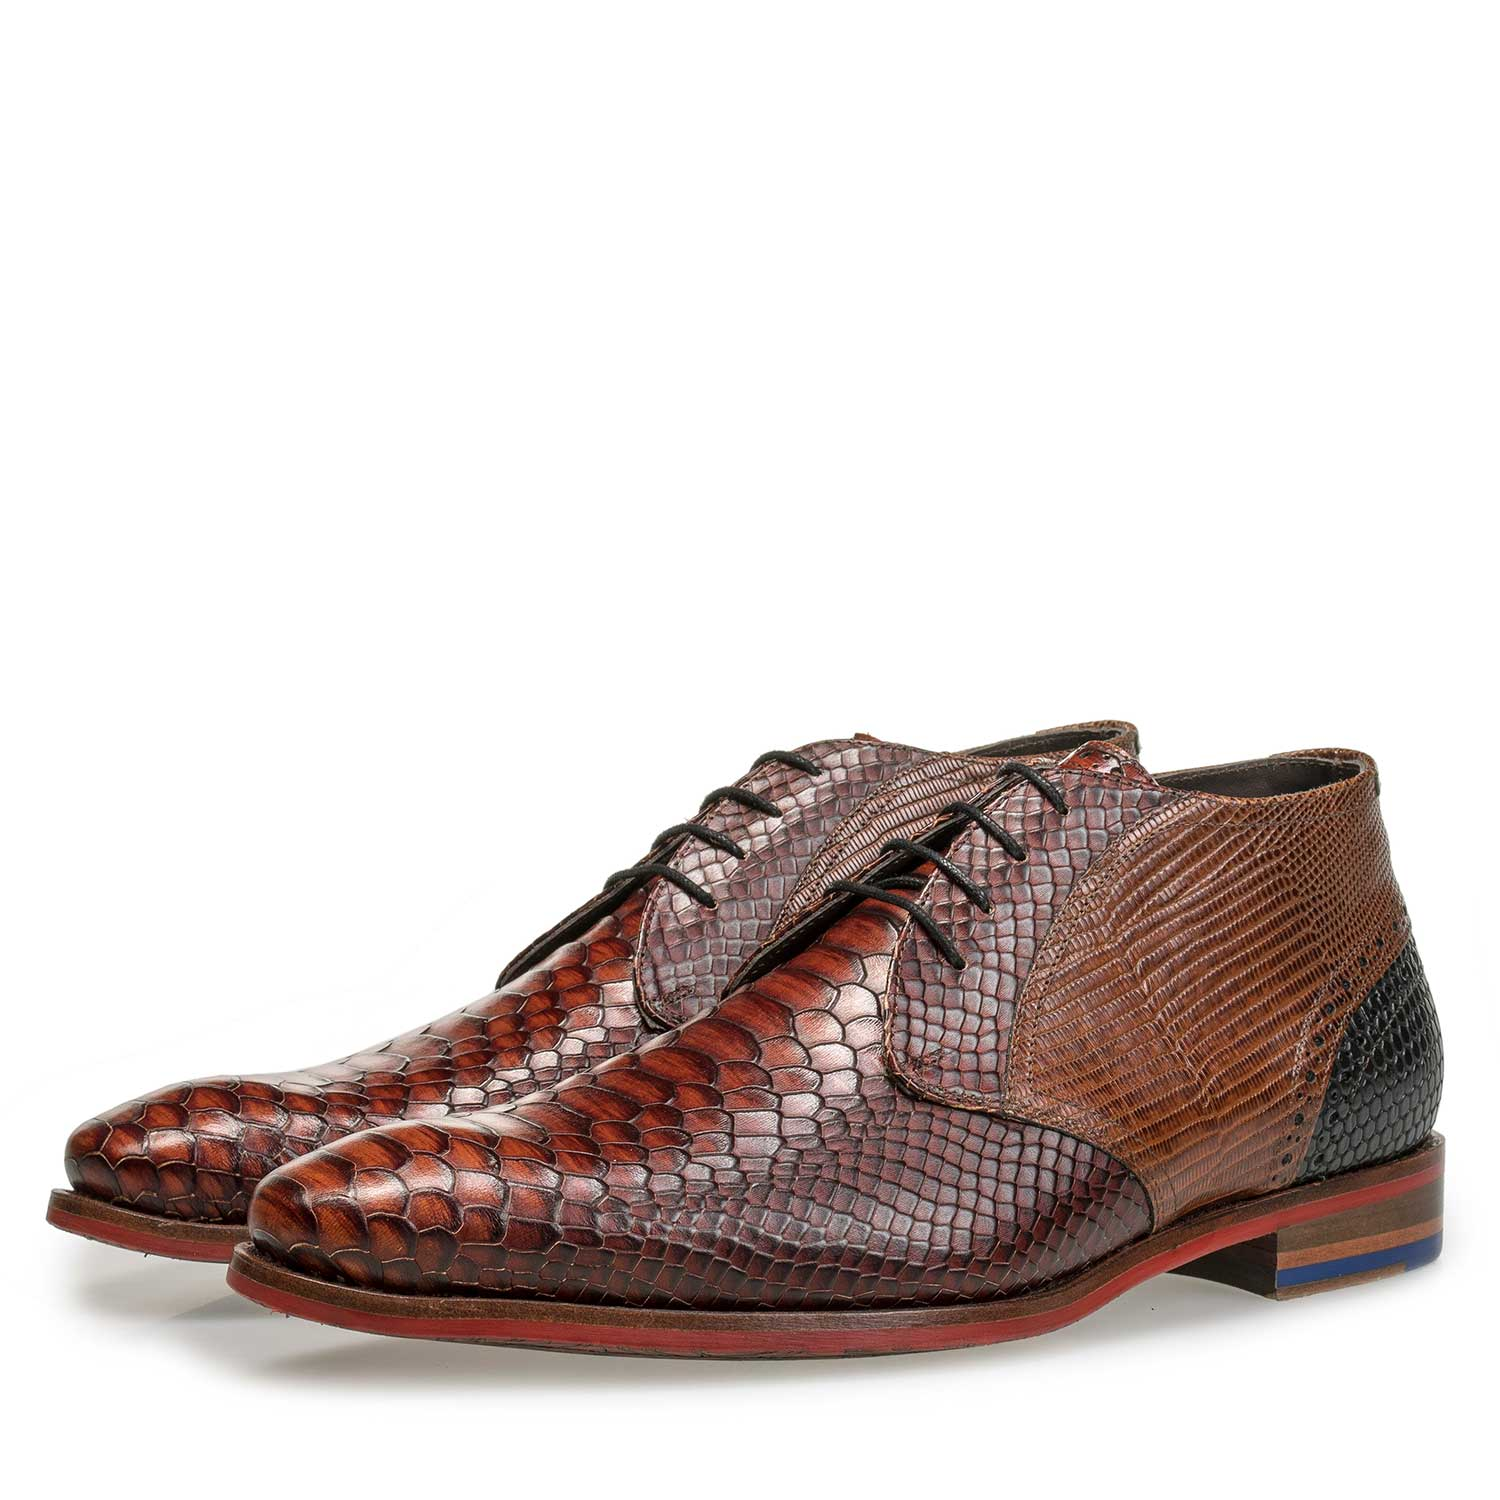 20105/00 - Mid-high cognac-coloured lace shoe with snake print